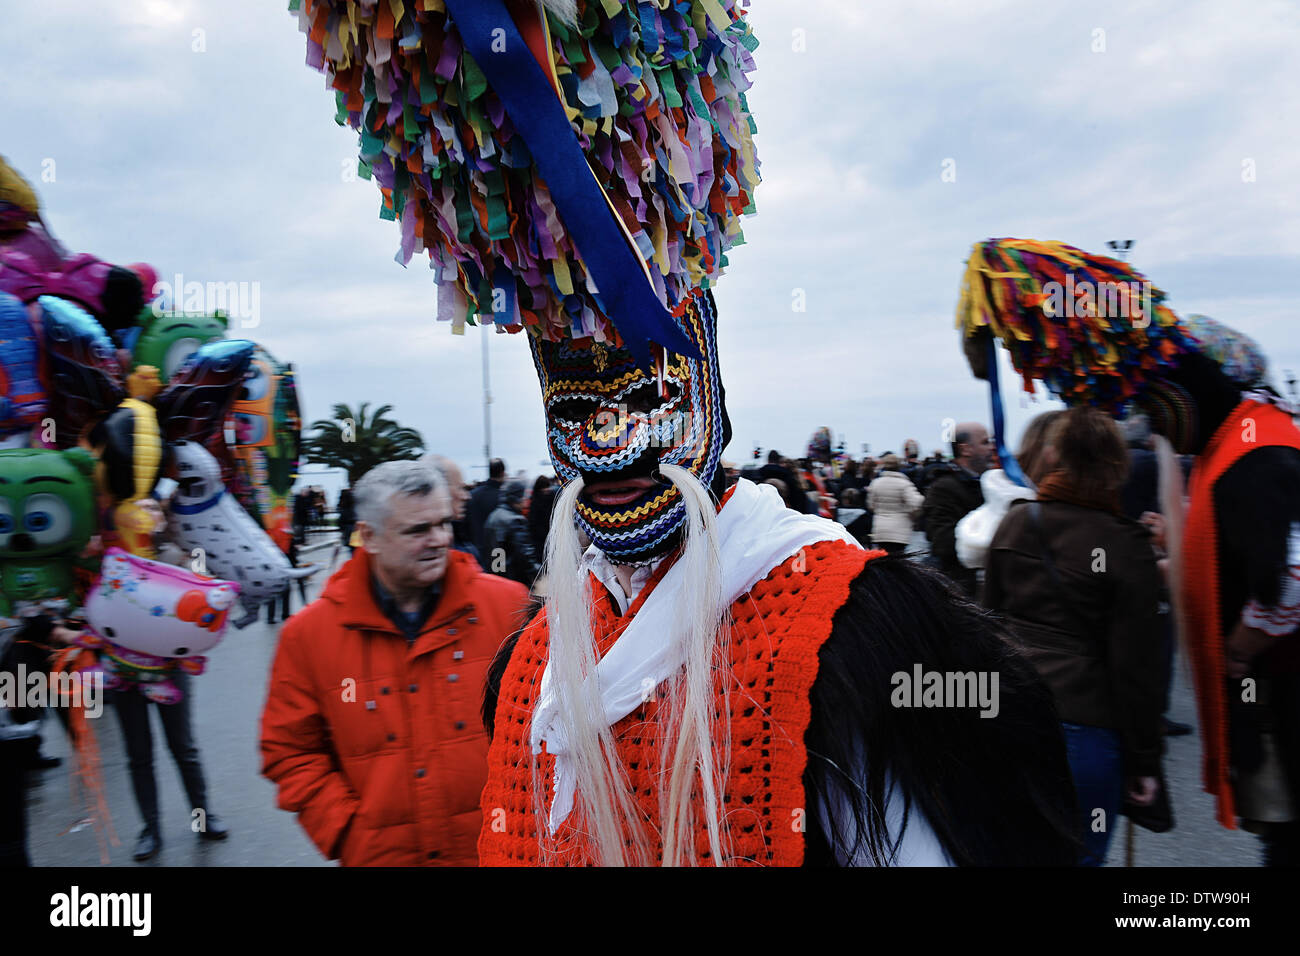 Thessaloniki, Greece. 23rd Feb, 2014. A bell bearer dances during the parade on the seaside avenue of Thessaloniki. Stock Photo